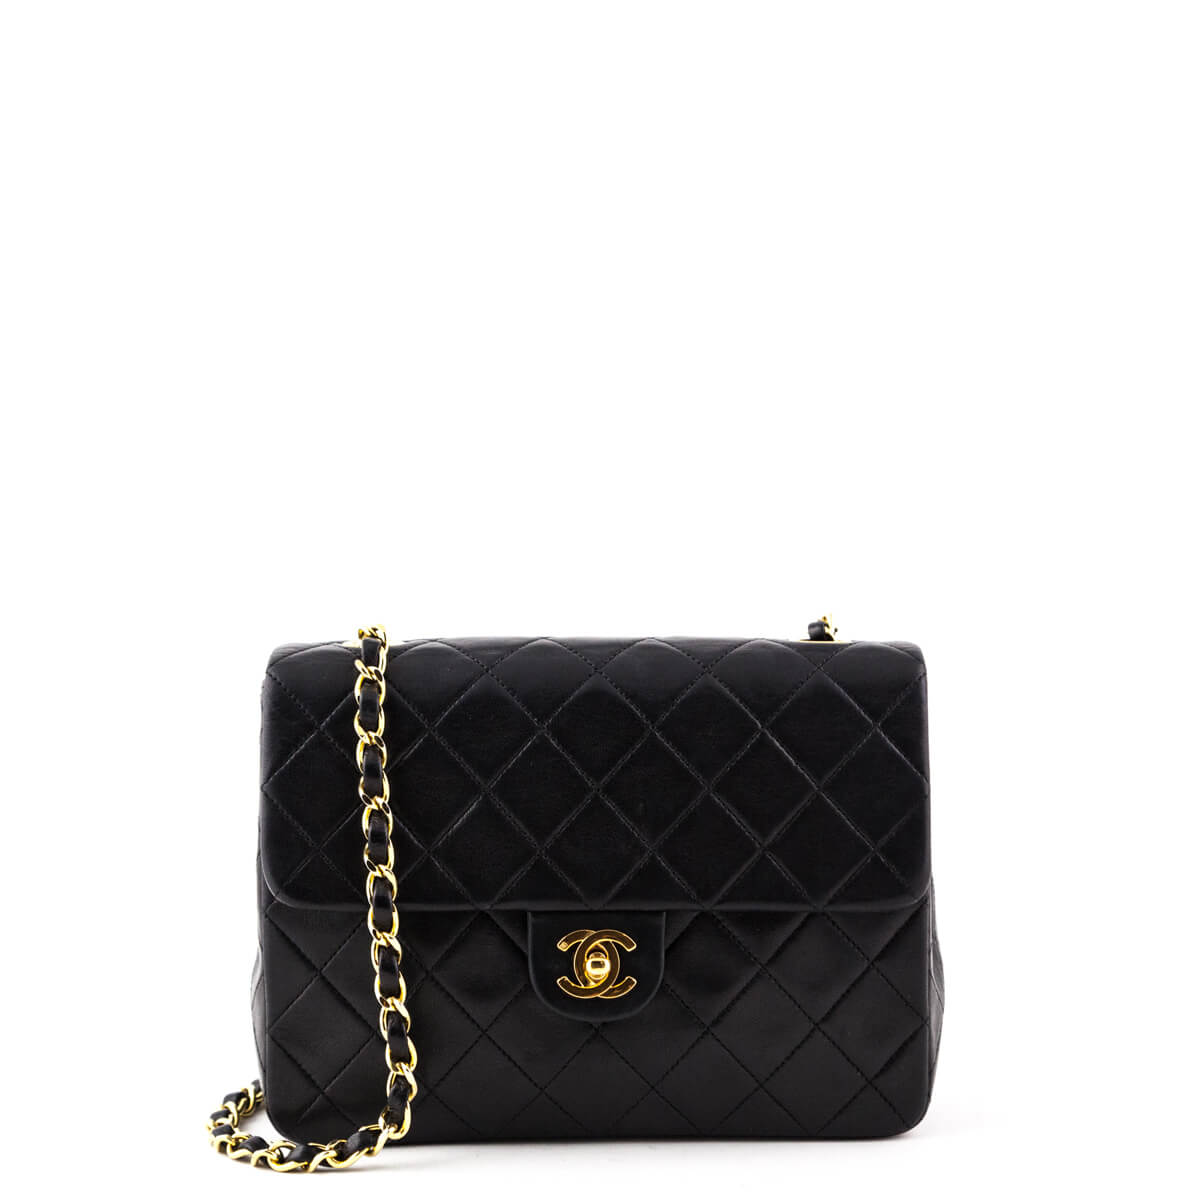 8bb1137abf72 Chanel Black Lambskin Vintage Mini Square Flap bag - LOVE that BAG -  Preowned Authentic Designer ...